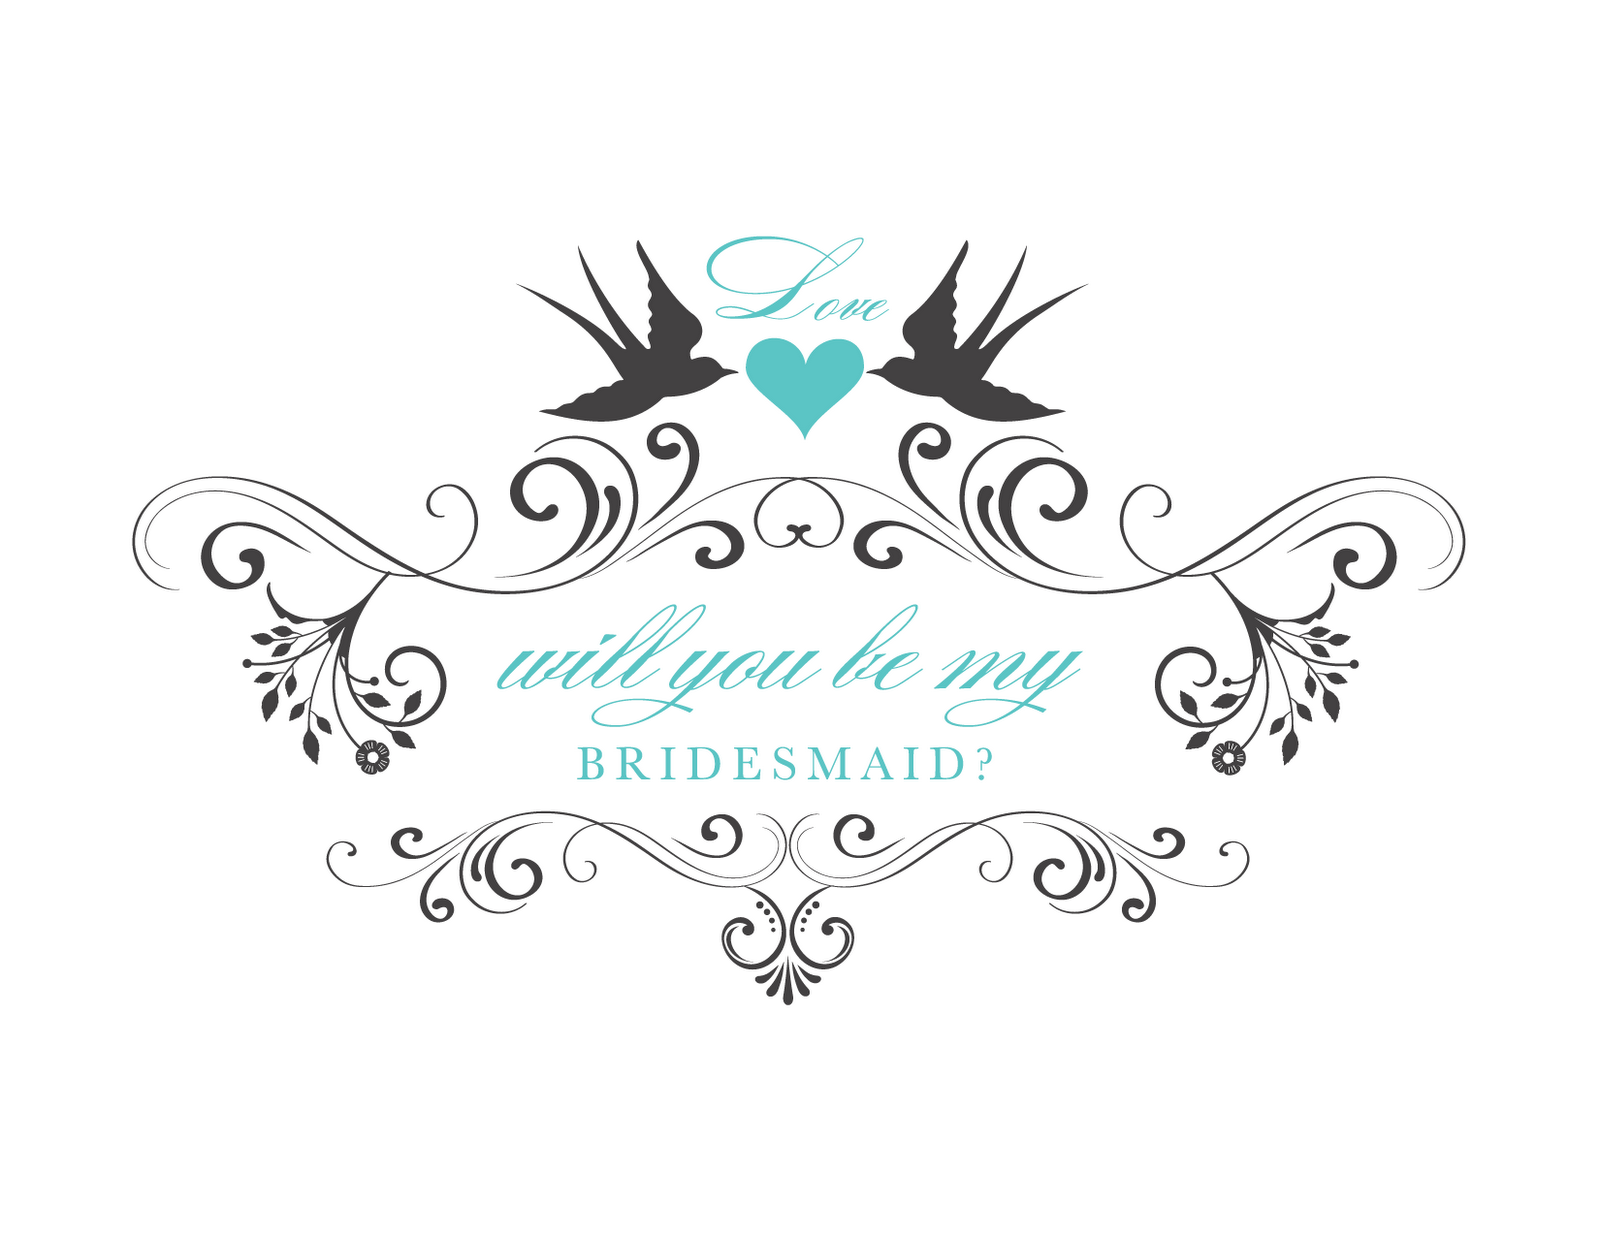 Uptown Soirée: Will You Be My Bridesmaid?